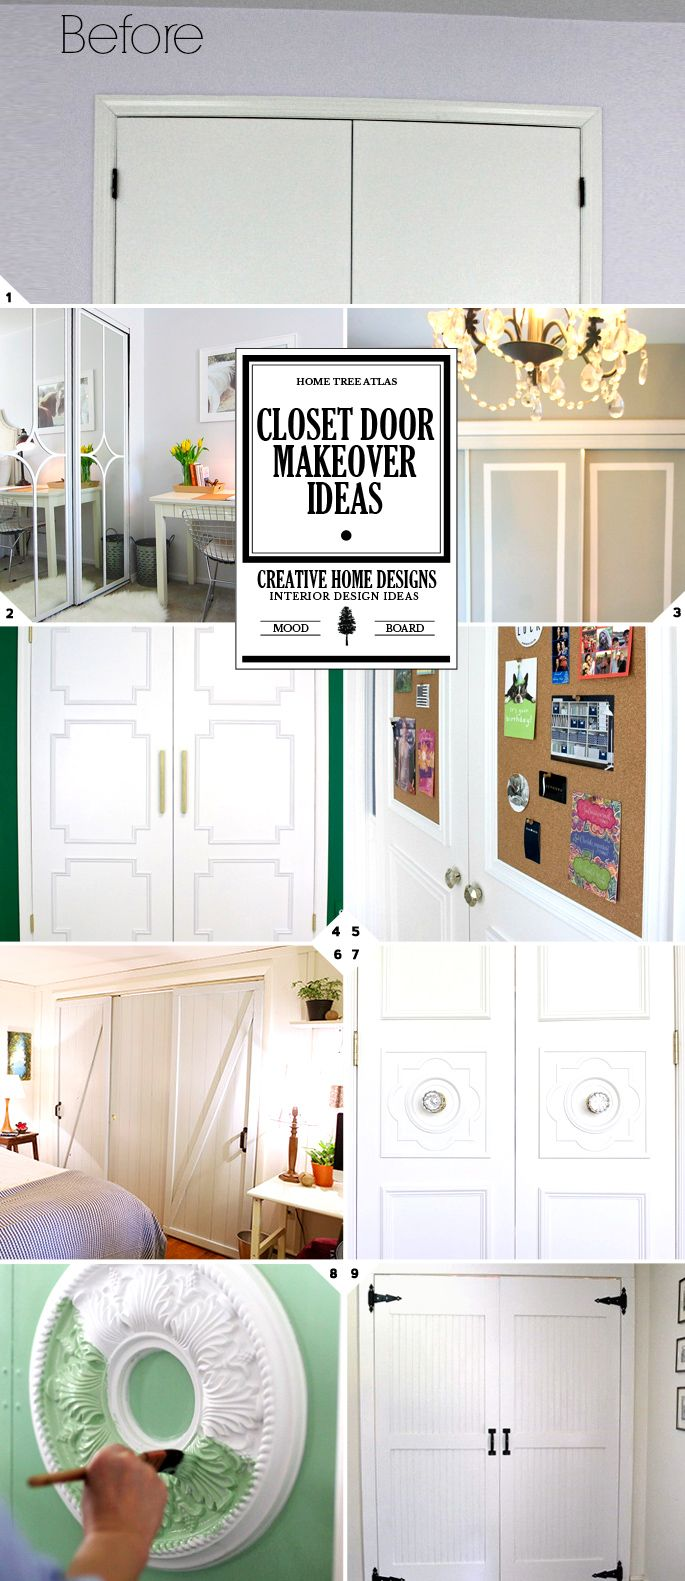 If you think about it, your closet doors take up a lot of 'visual space' in your bedroom. This means that the style and design of them really impacts the style of the space. And it doesn't take much to completely change the look and feel of them. Here is a list of DIY closet […]